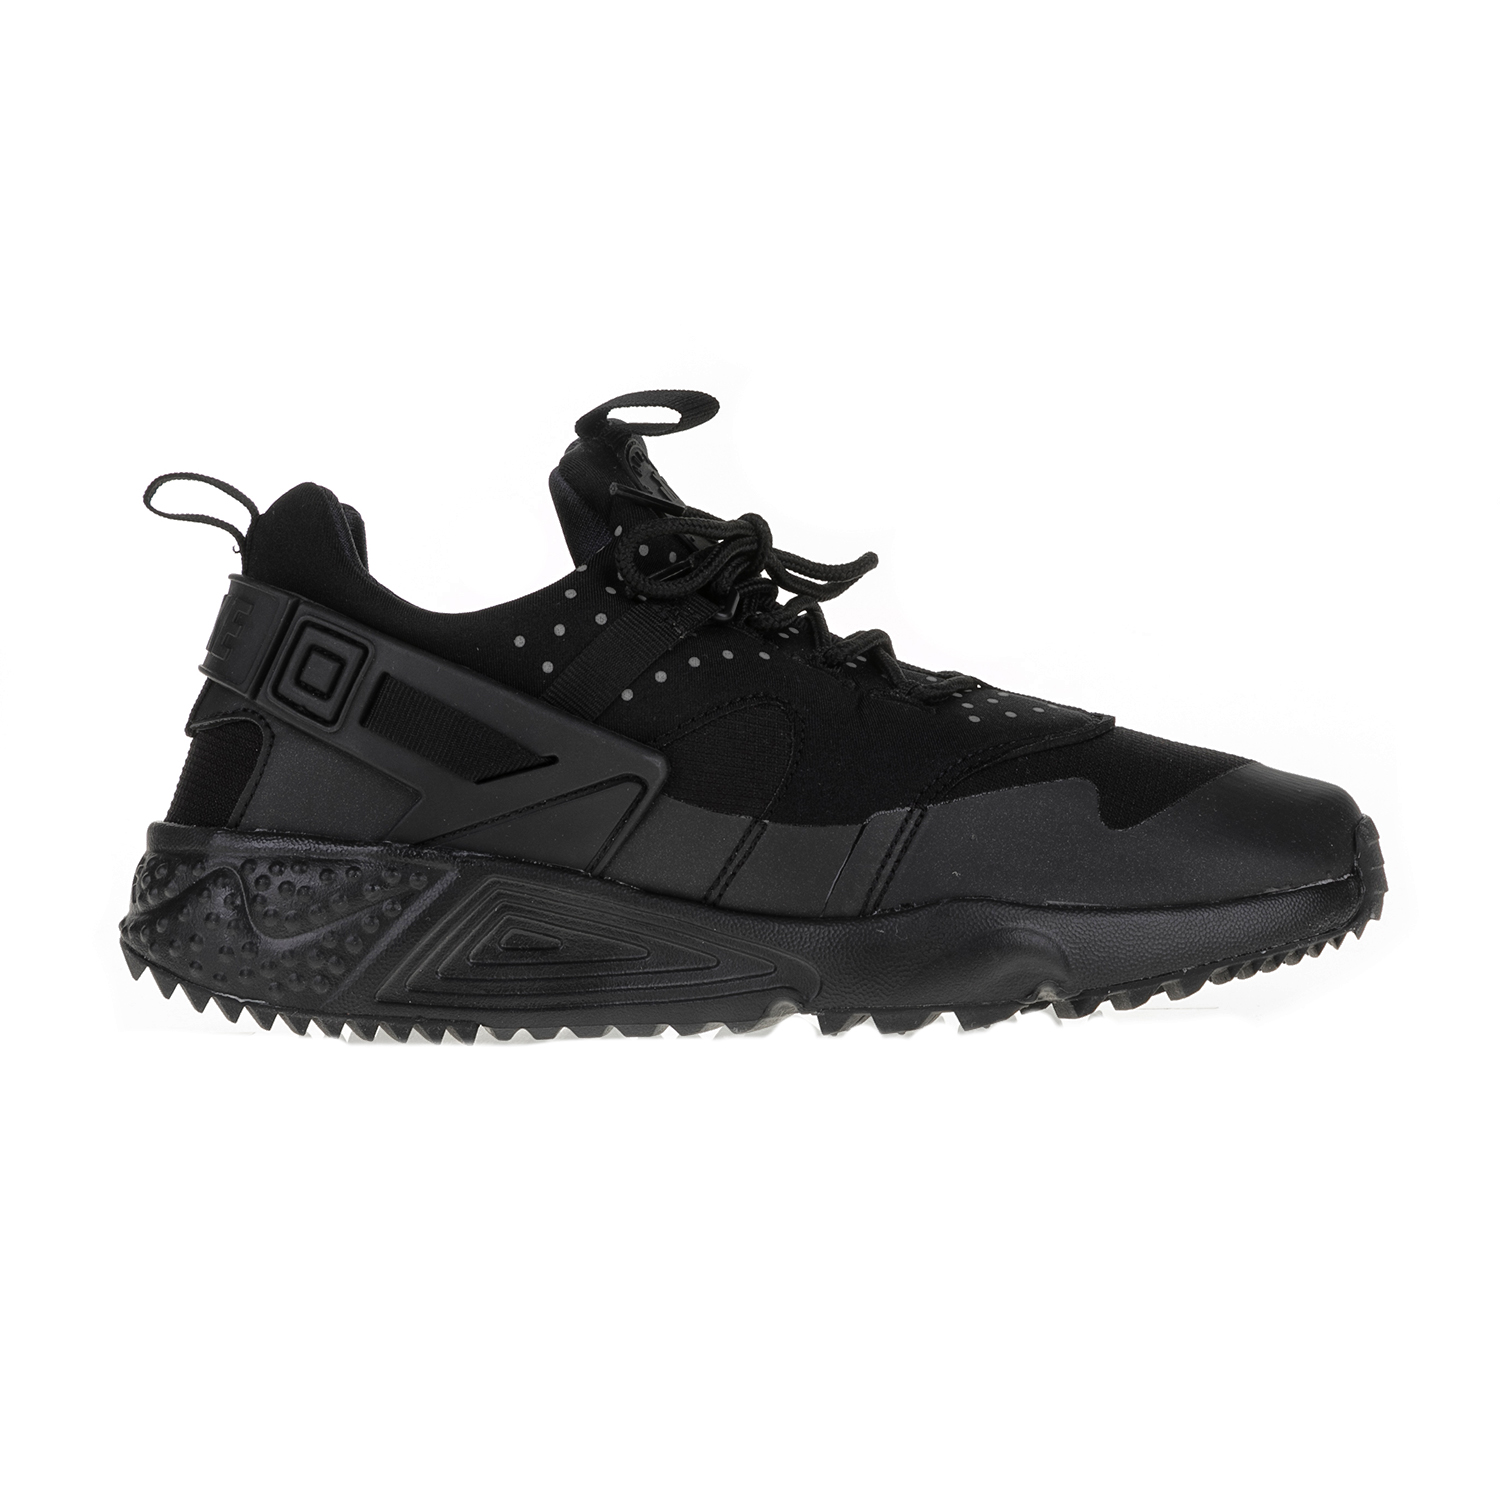 NIKE – Ανδρικά αθλητικά παπούτσια AIR HUARACHE UTILITY μαύρα